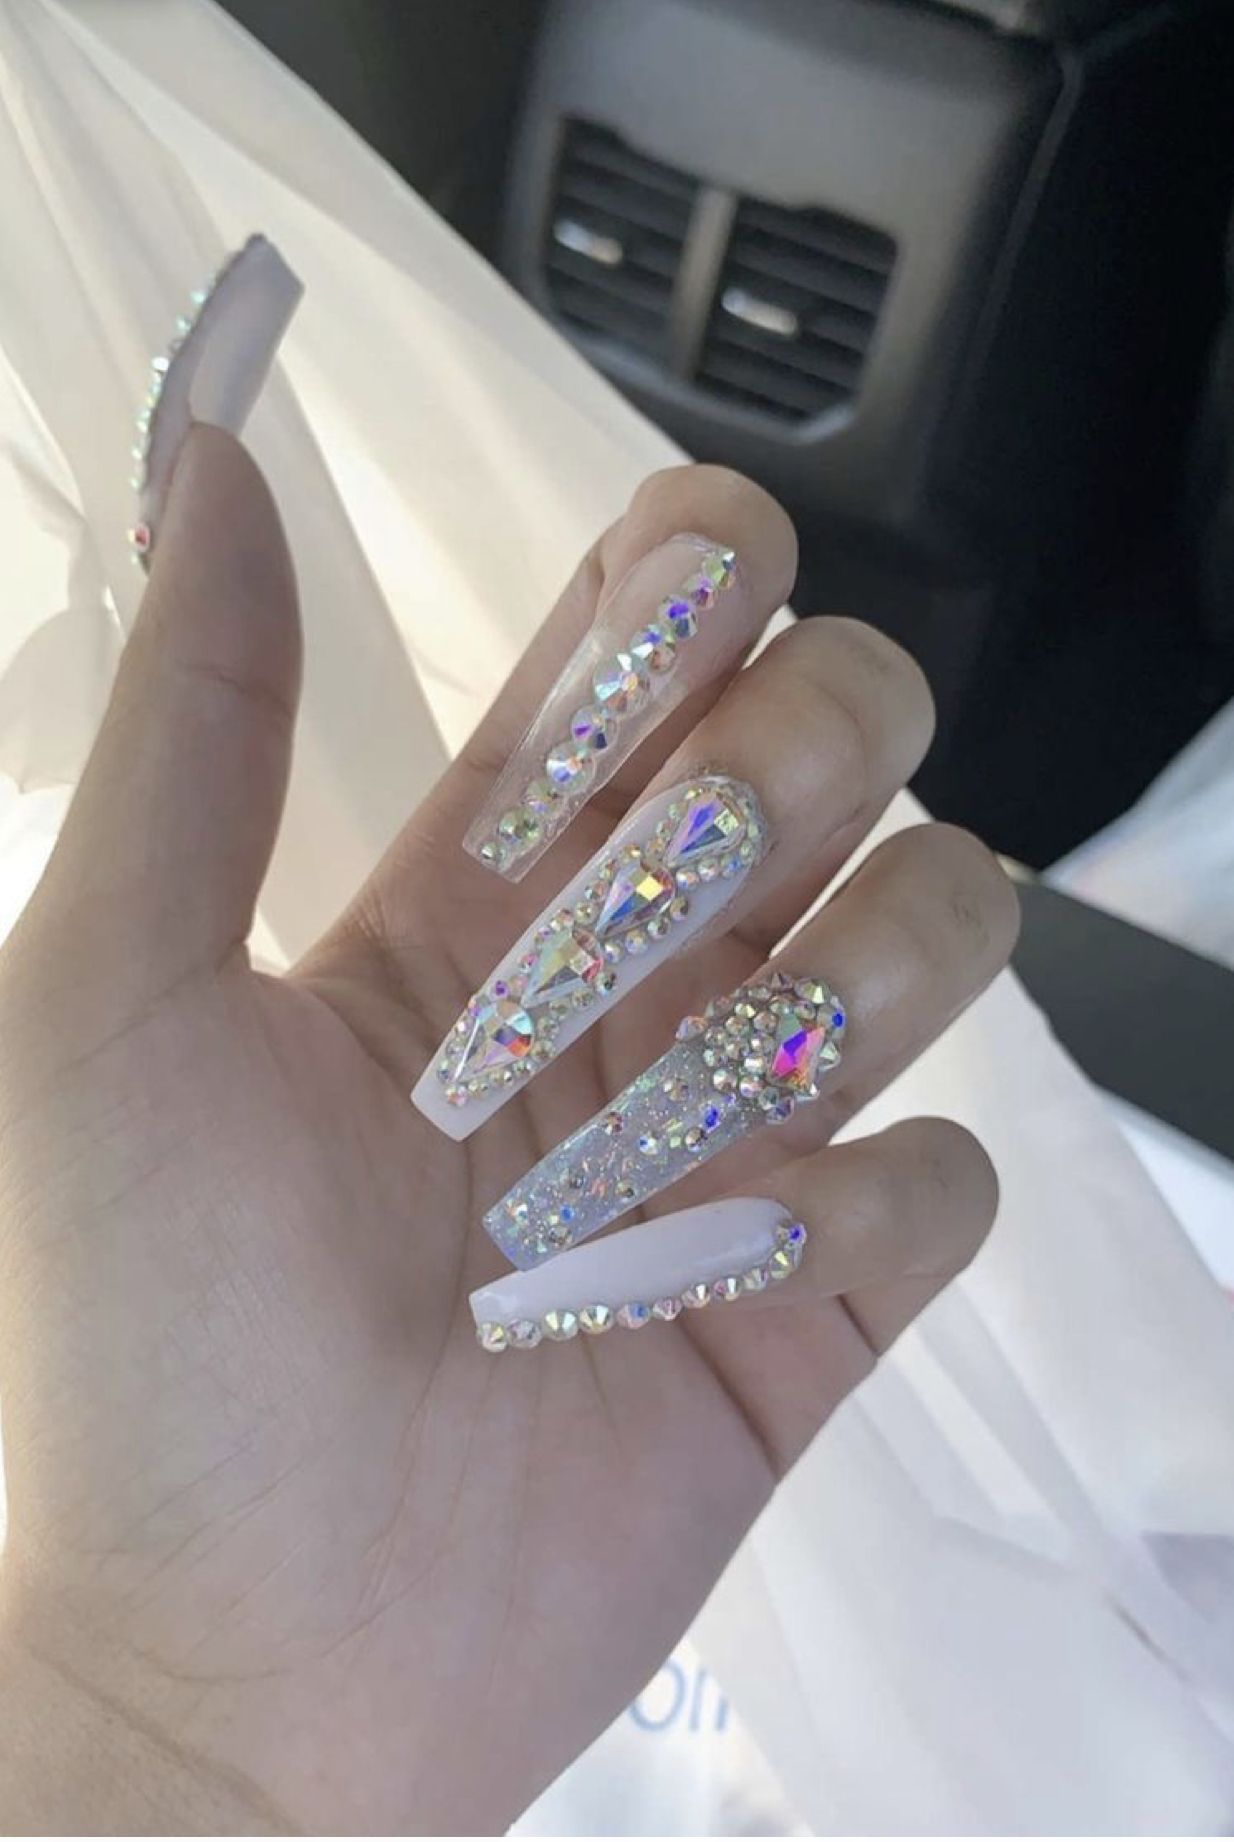 Pin By Tee Laniece On Claws Bling Acrylic Nails Fall Acrylic Nails Bling Nails